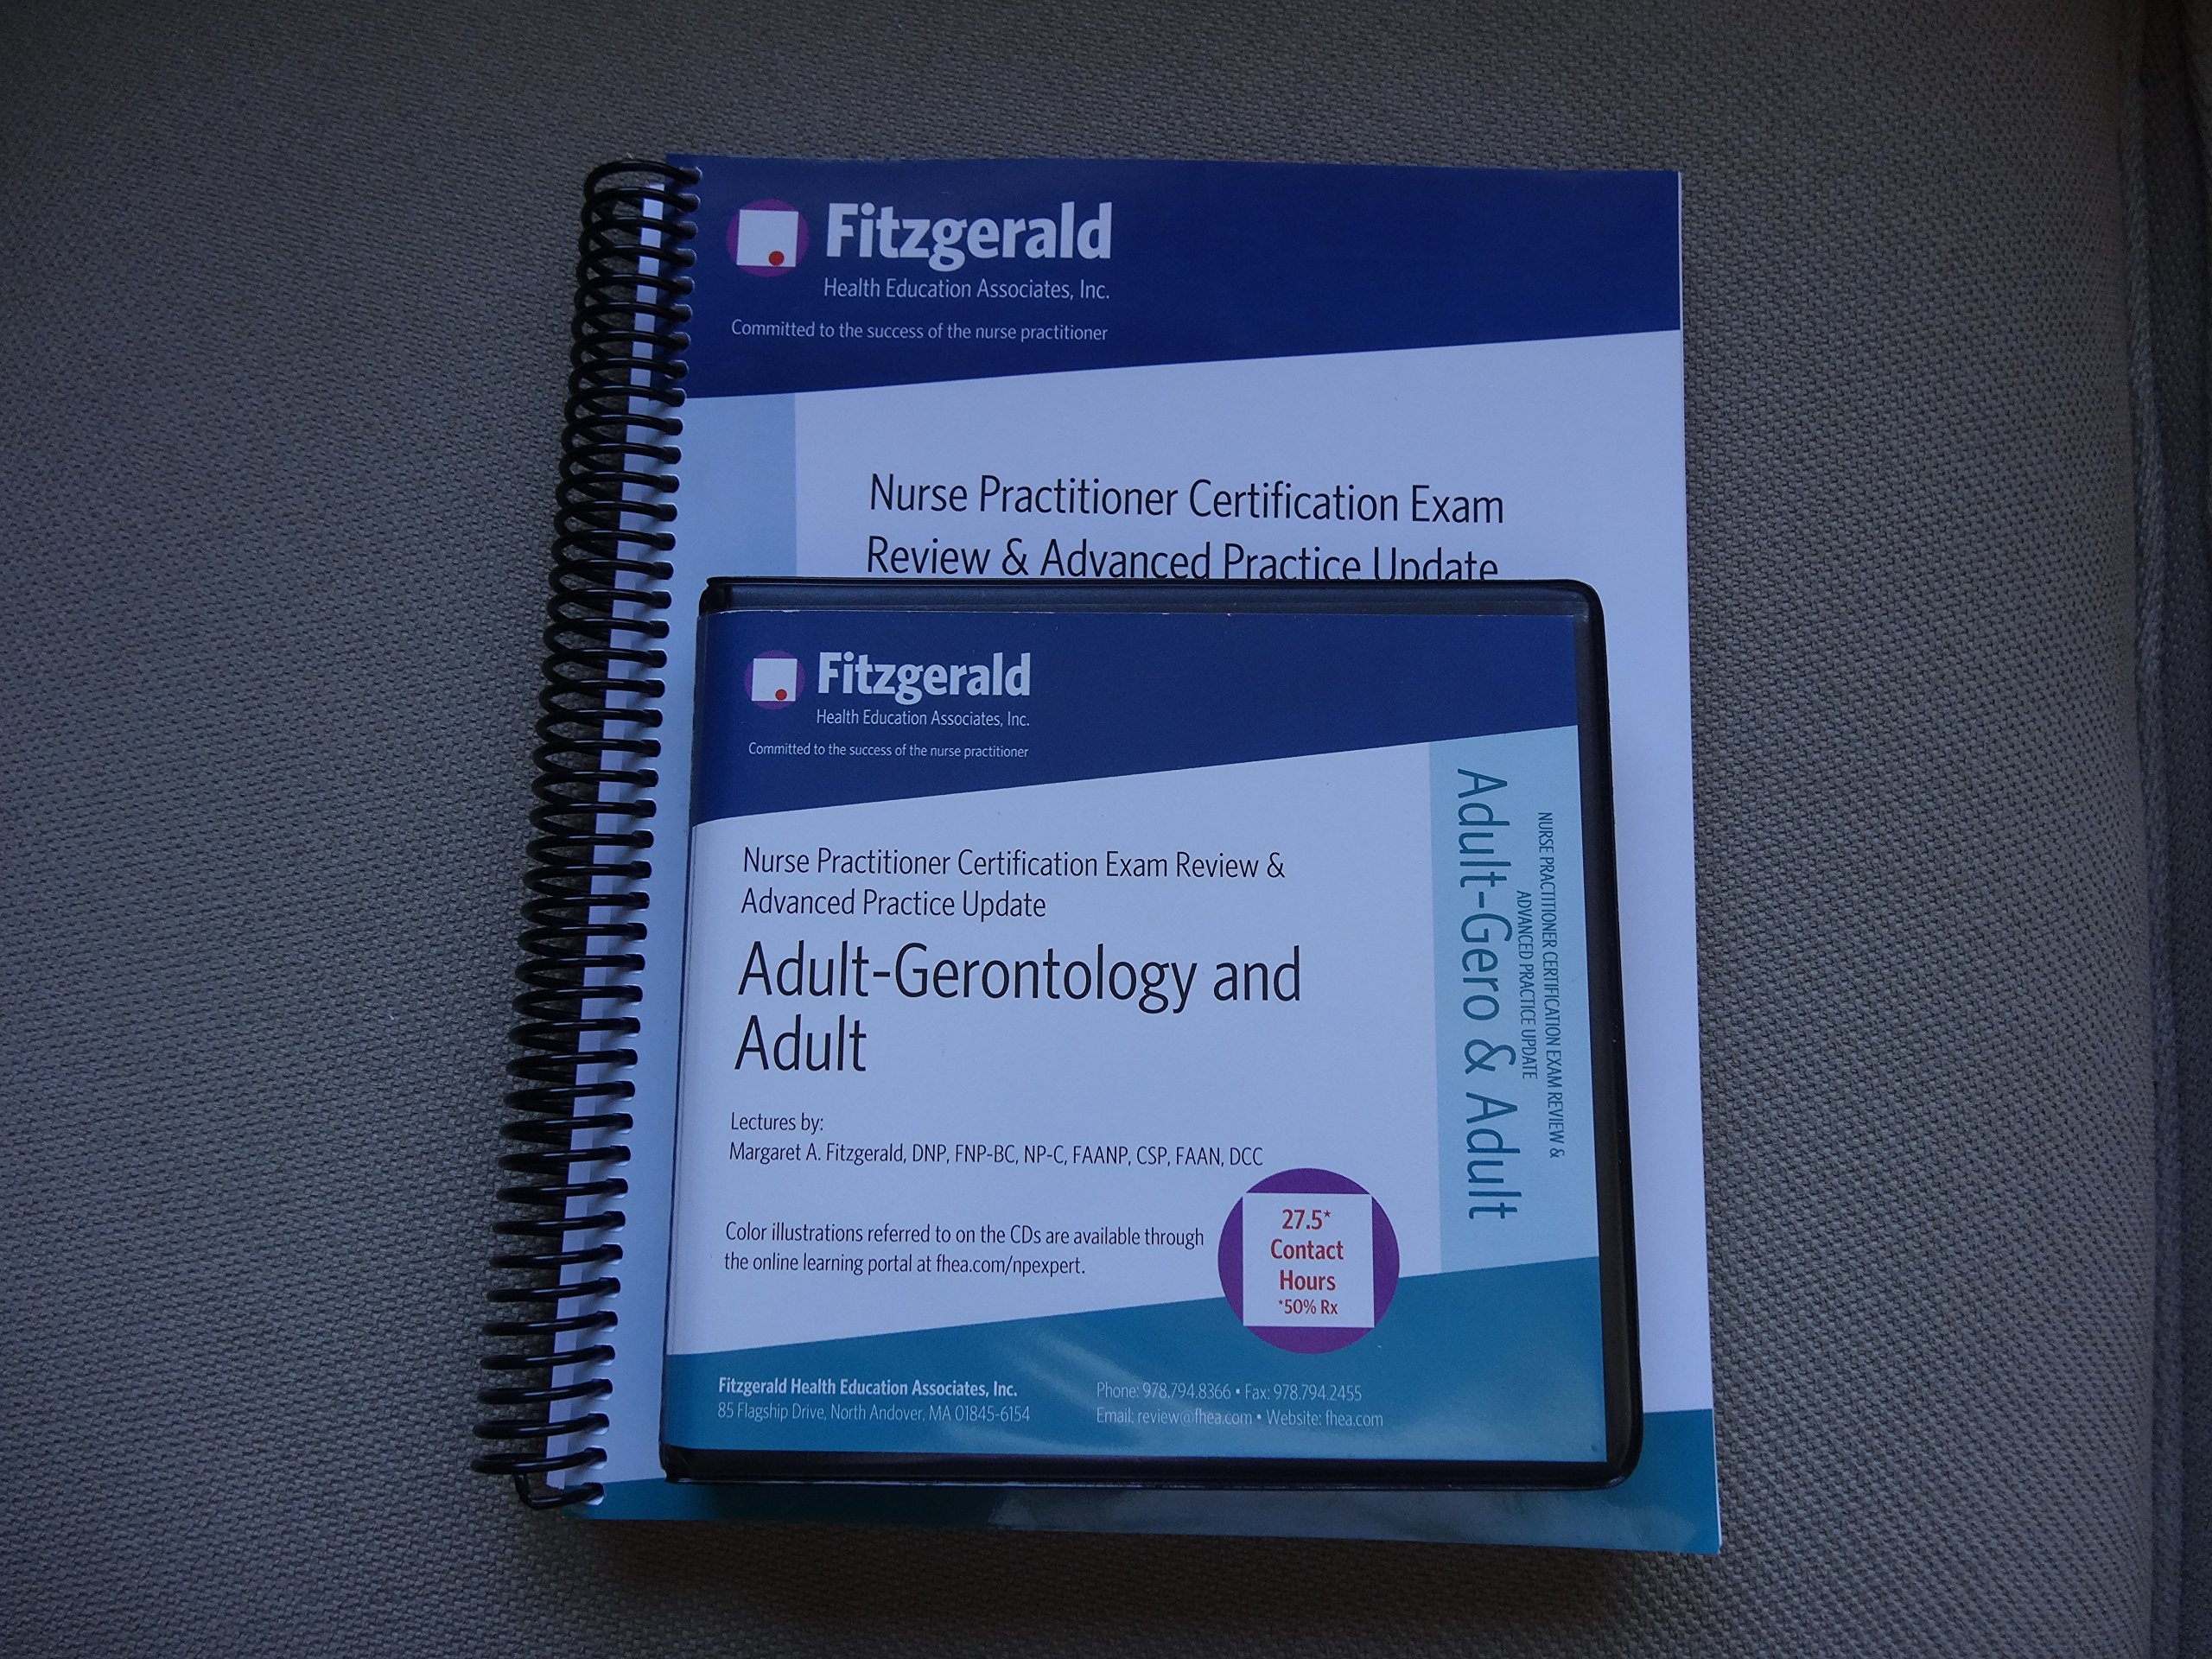 Nurse Practitioner Certification Exam Review & Advanced Practice Update: Family by FitzGerald Health Associates